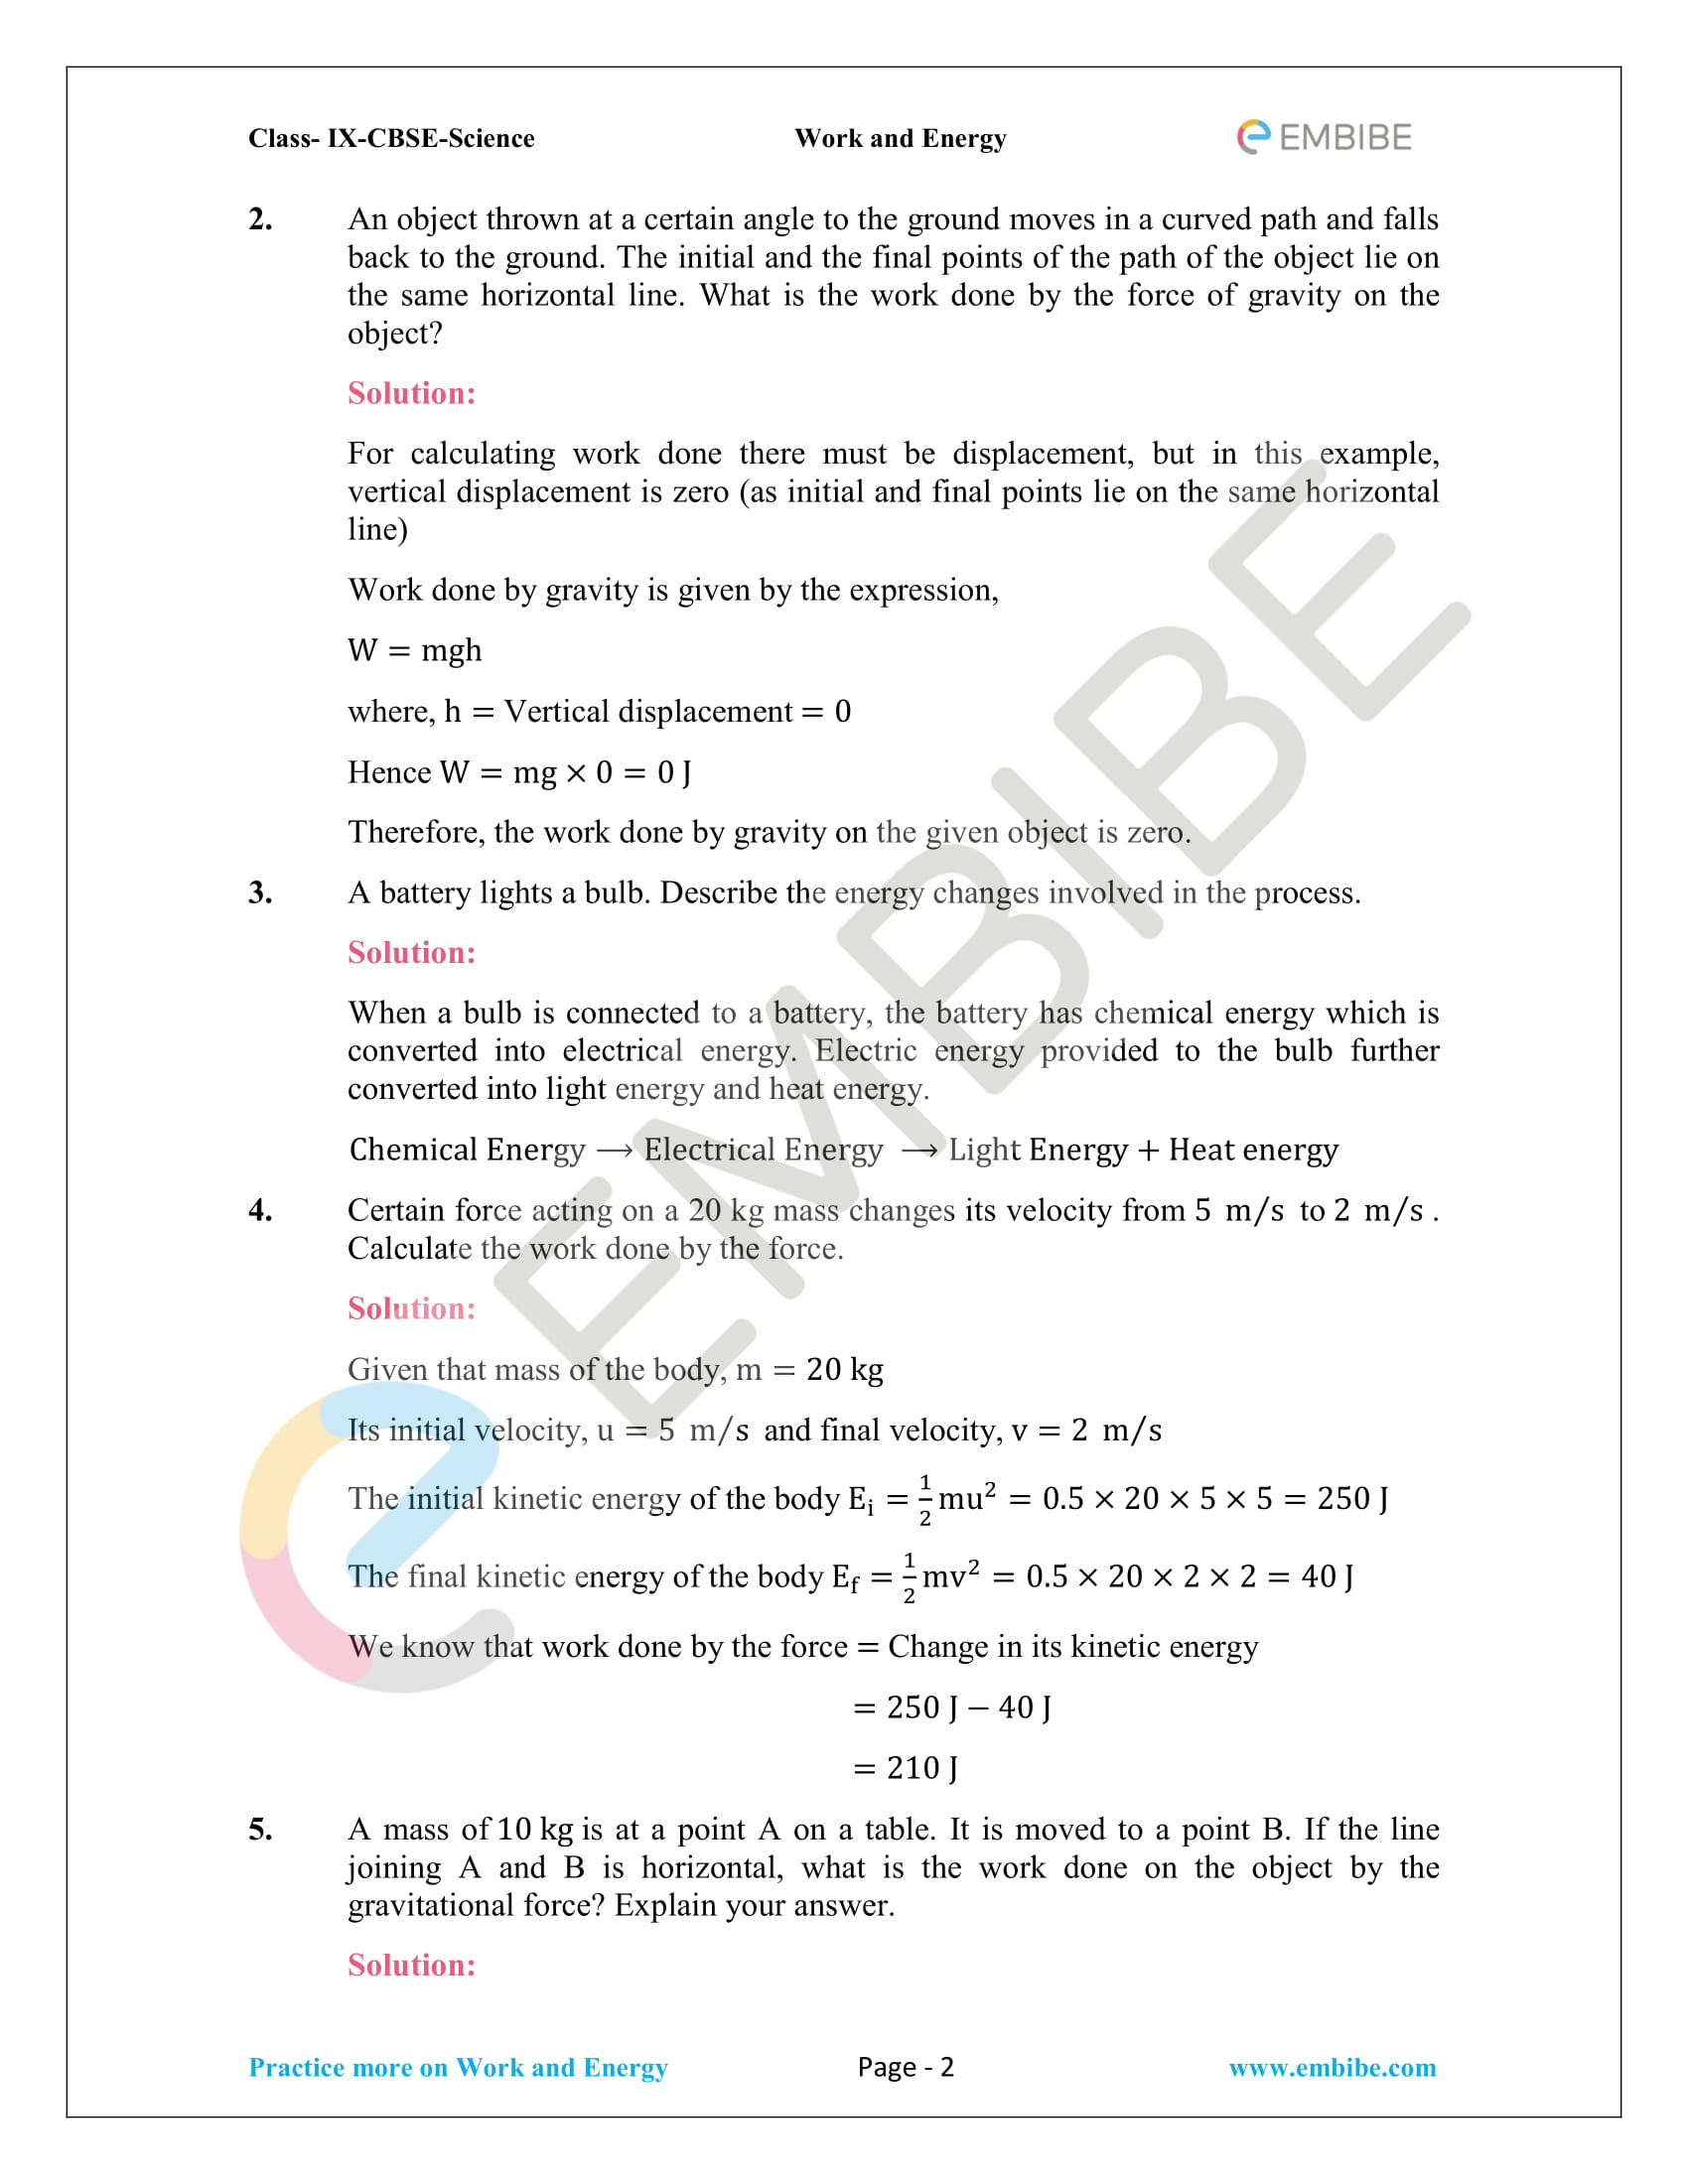 CBSE NCERT Solutions For Class 9 Science Chapter 11 – Work And Energy - 2